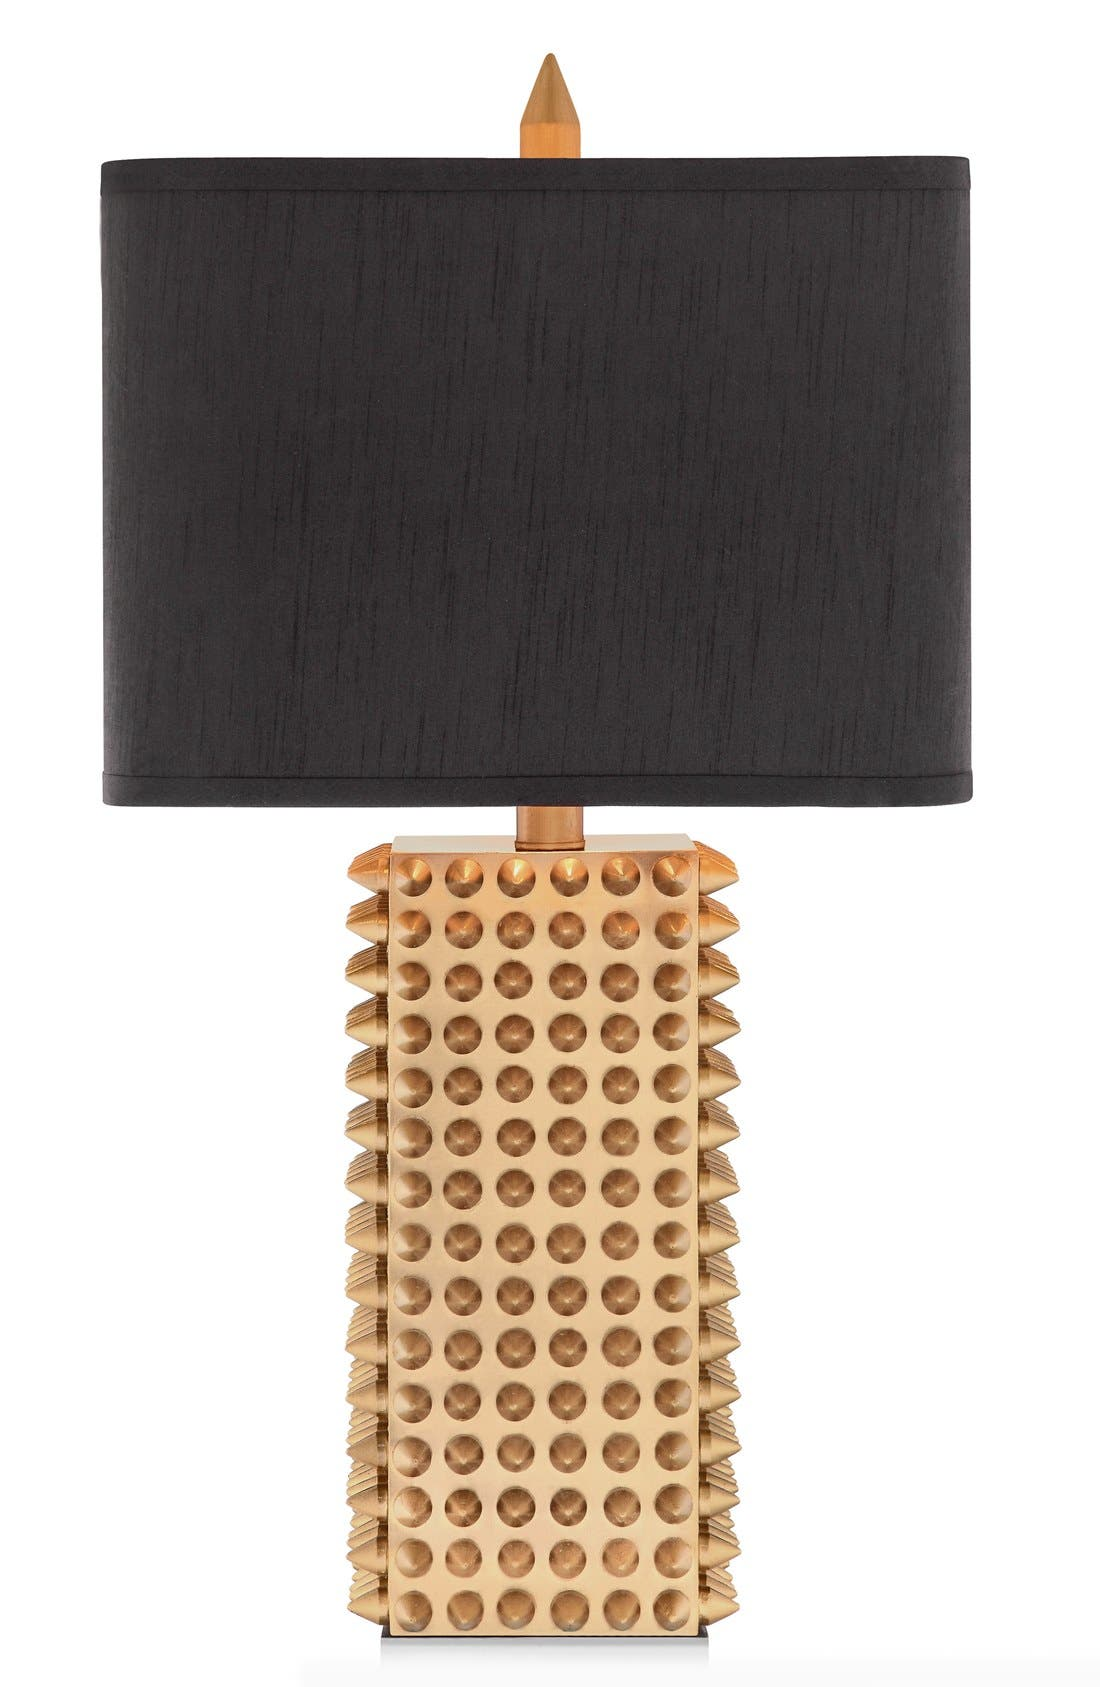 Alternate Image 1 Selected - JAlexander Lighting Goldtone Spiked Square Table Lamp